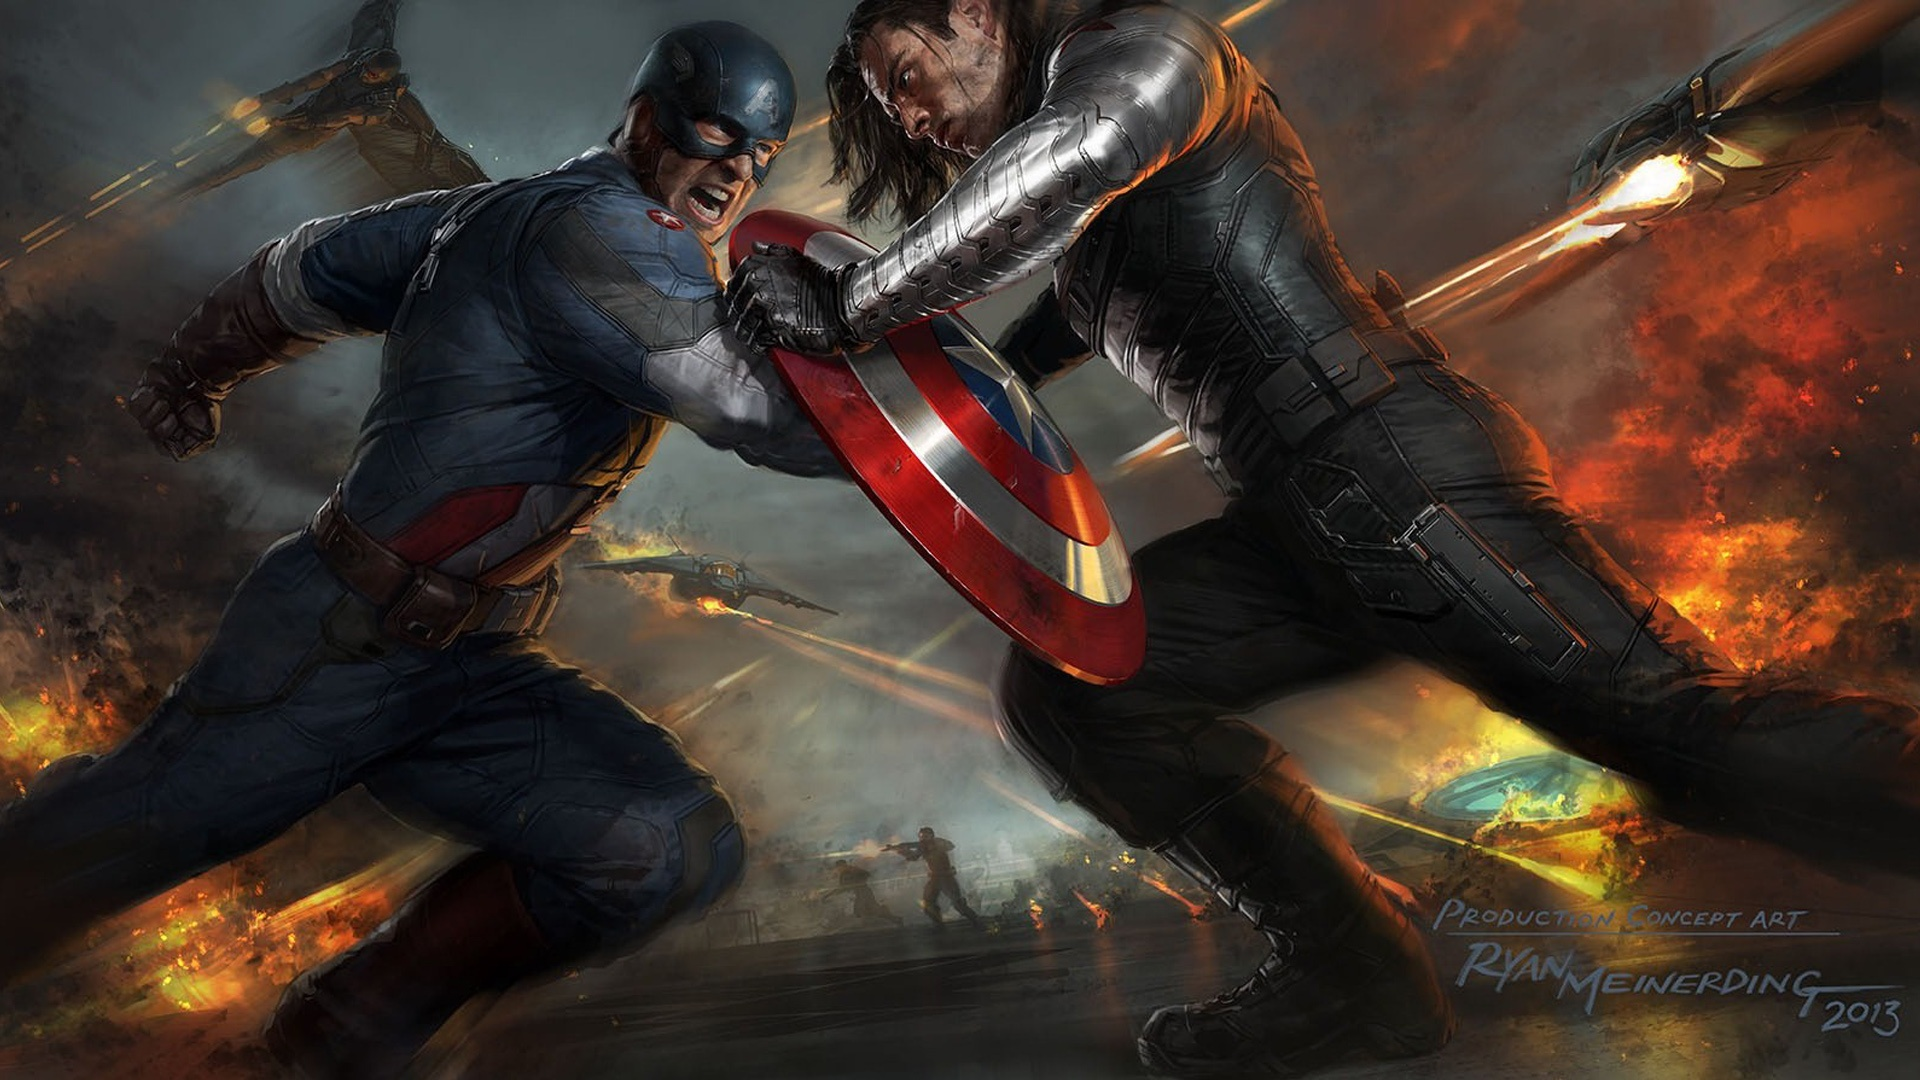 Captain America The Winter Soldier Artwork Wallpapers HD Wallpapers 1920x1080